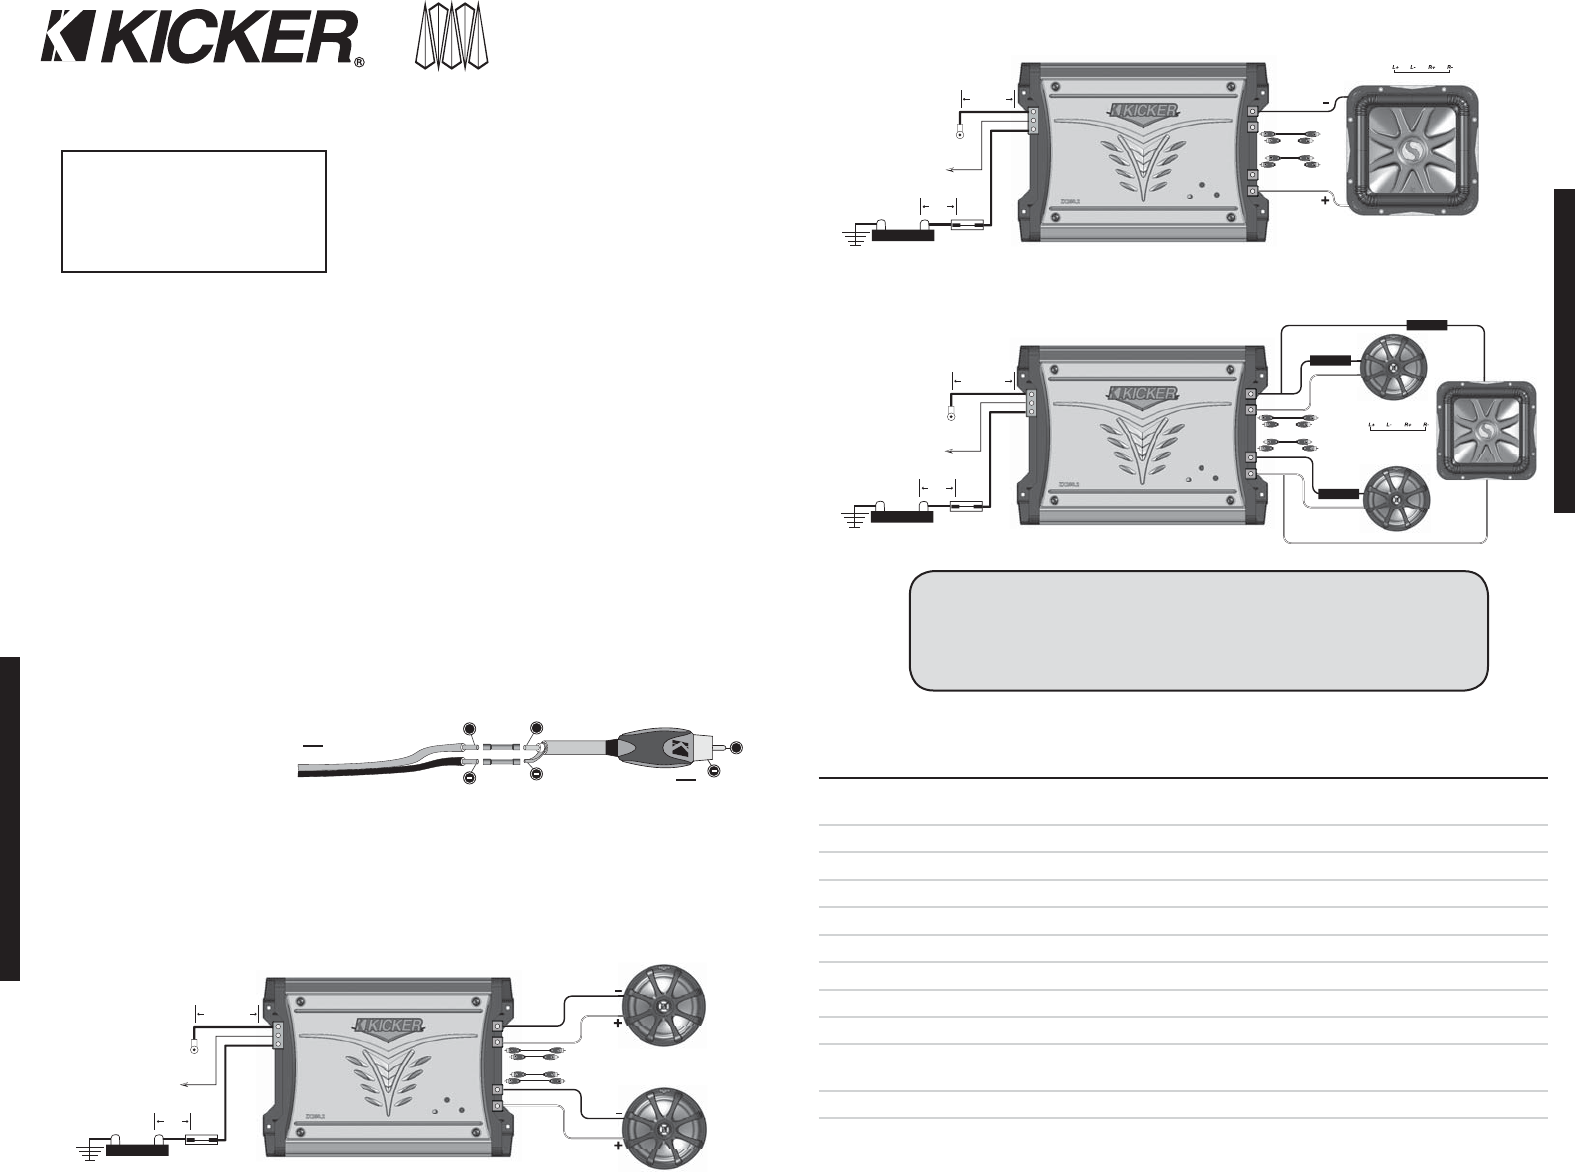 Page 2 Of Kicker Stereo Amplifier Zx350 2 User Guide